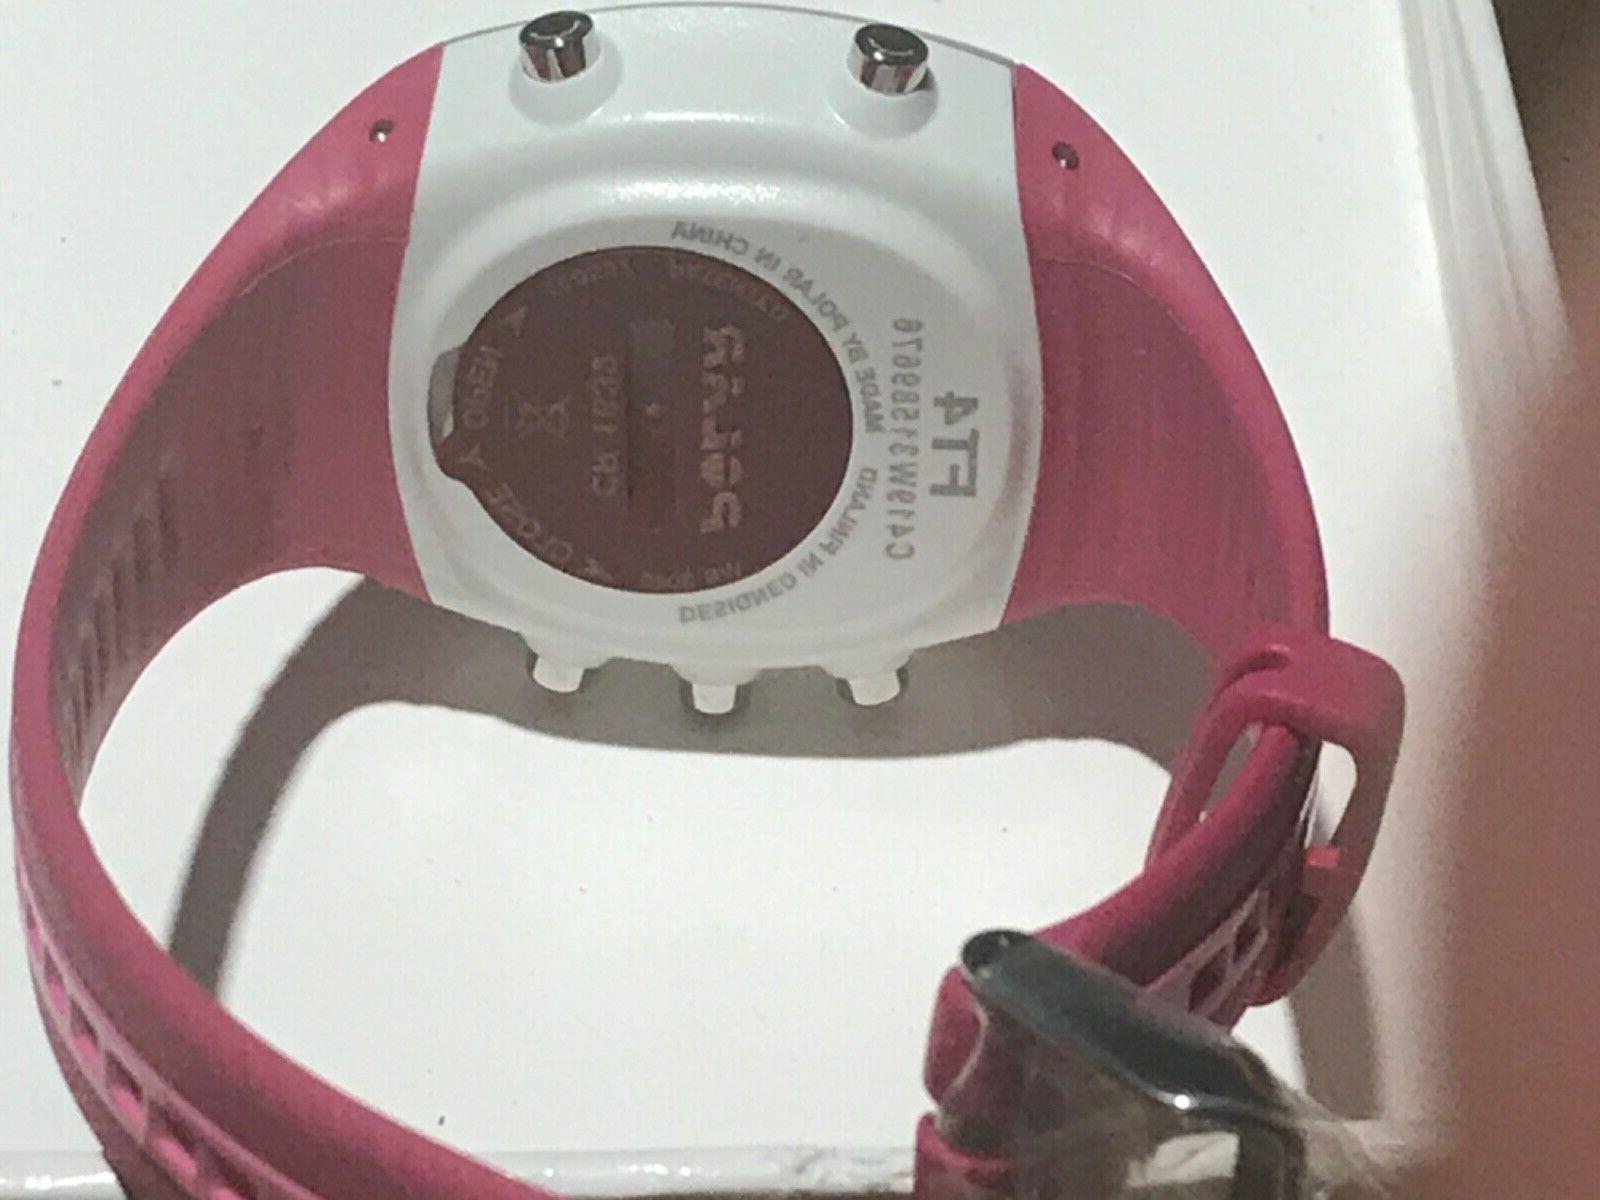 Polar Pink Rate Monitor